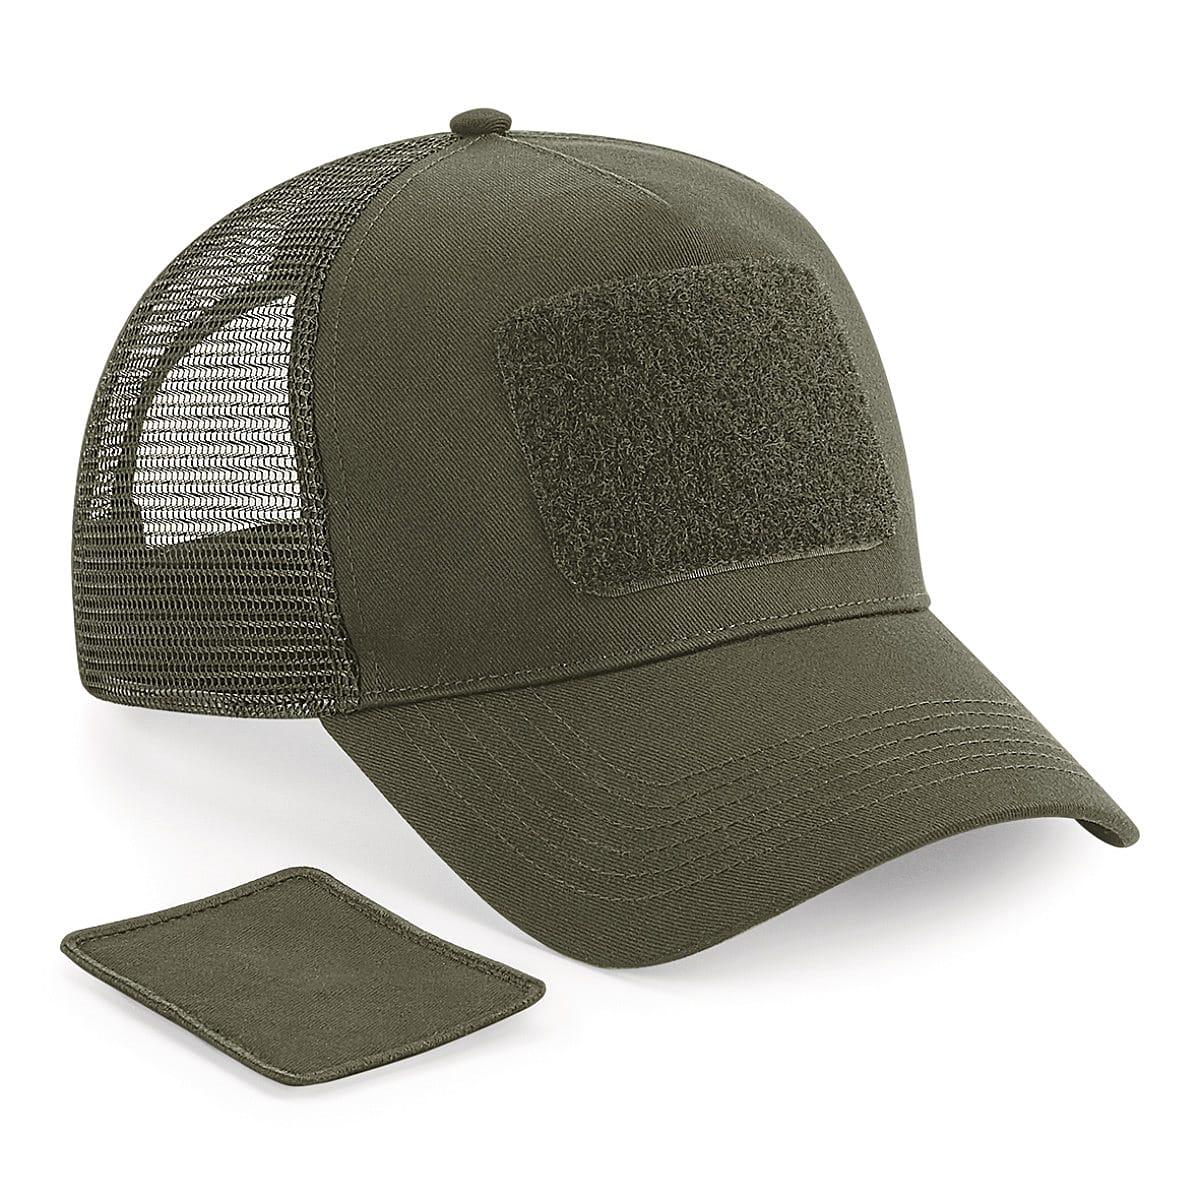 Beechfield Patch Snapback Trucker Cap in Military Green (Product Code: B641)